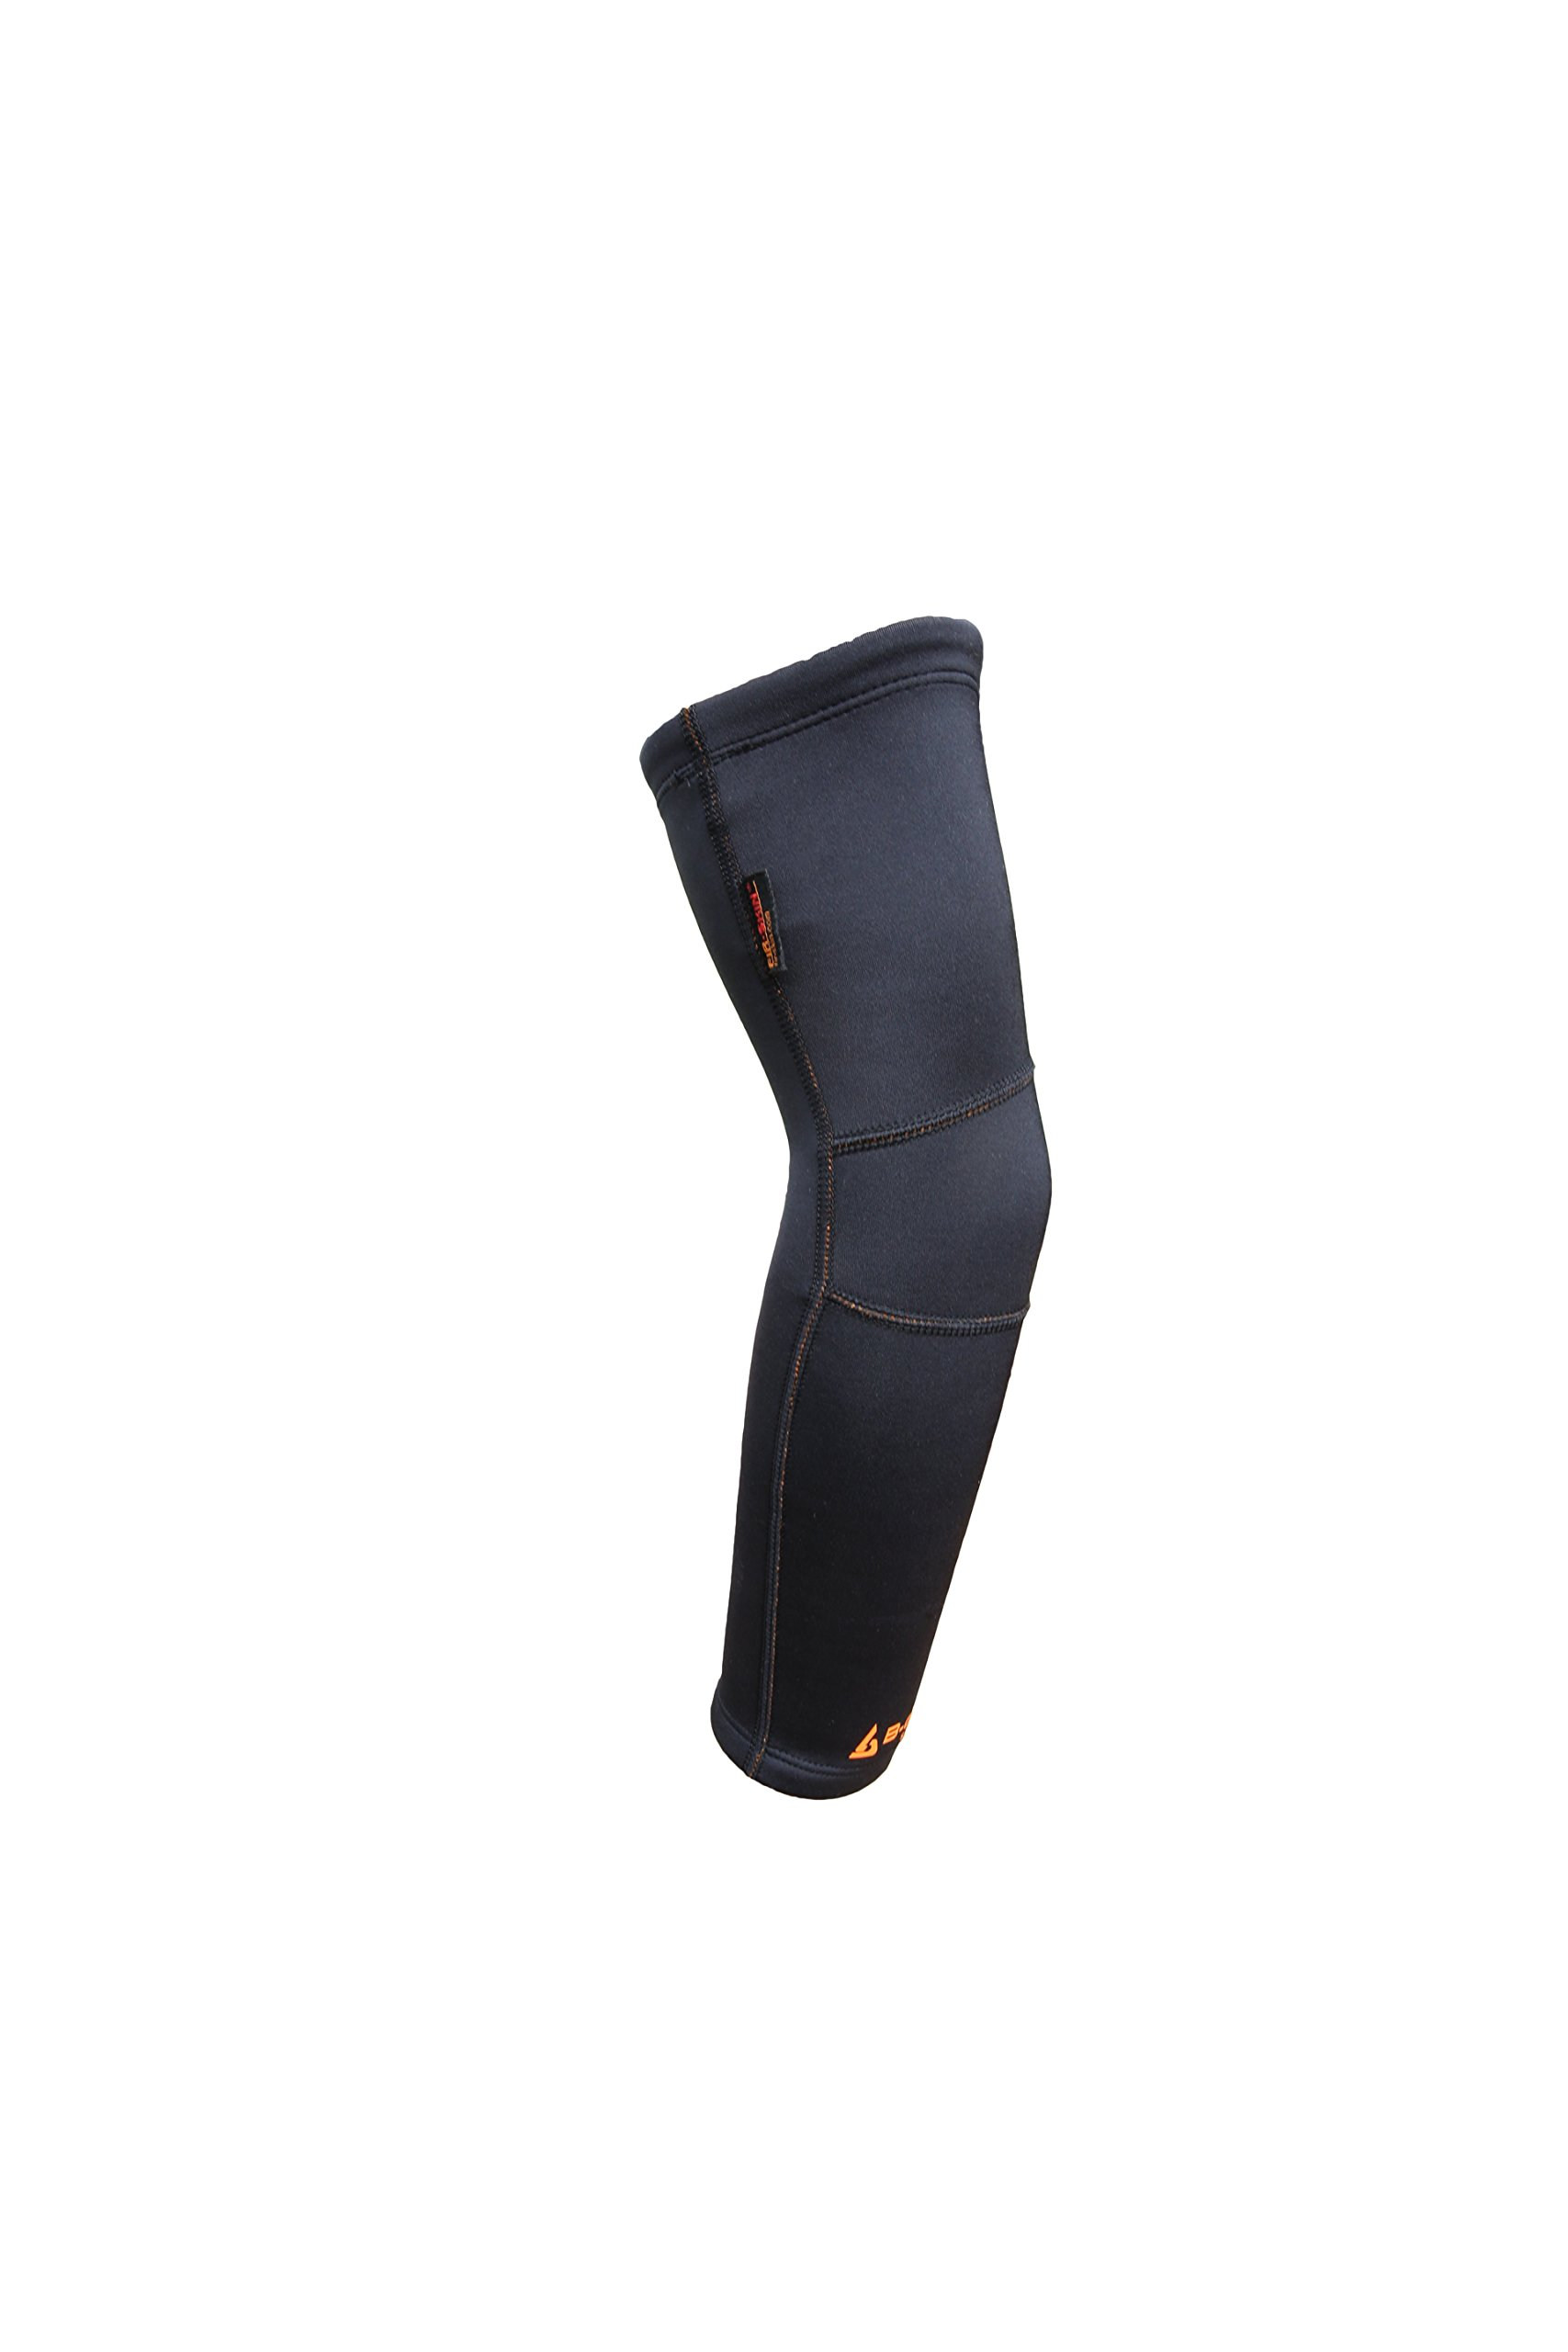 B-Driven Sports TITANIUM COMPRESSION ARM-KNEE SLEEVE - Infused Titanium Bio-Ceramic garment promotes natural FAR-Infrared Production for muscle joint healing, deep tissue warming, and pain relief.